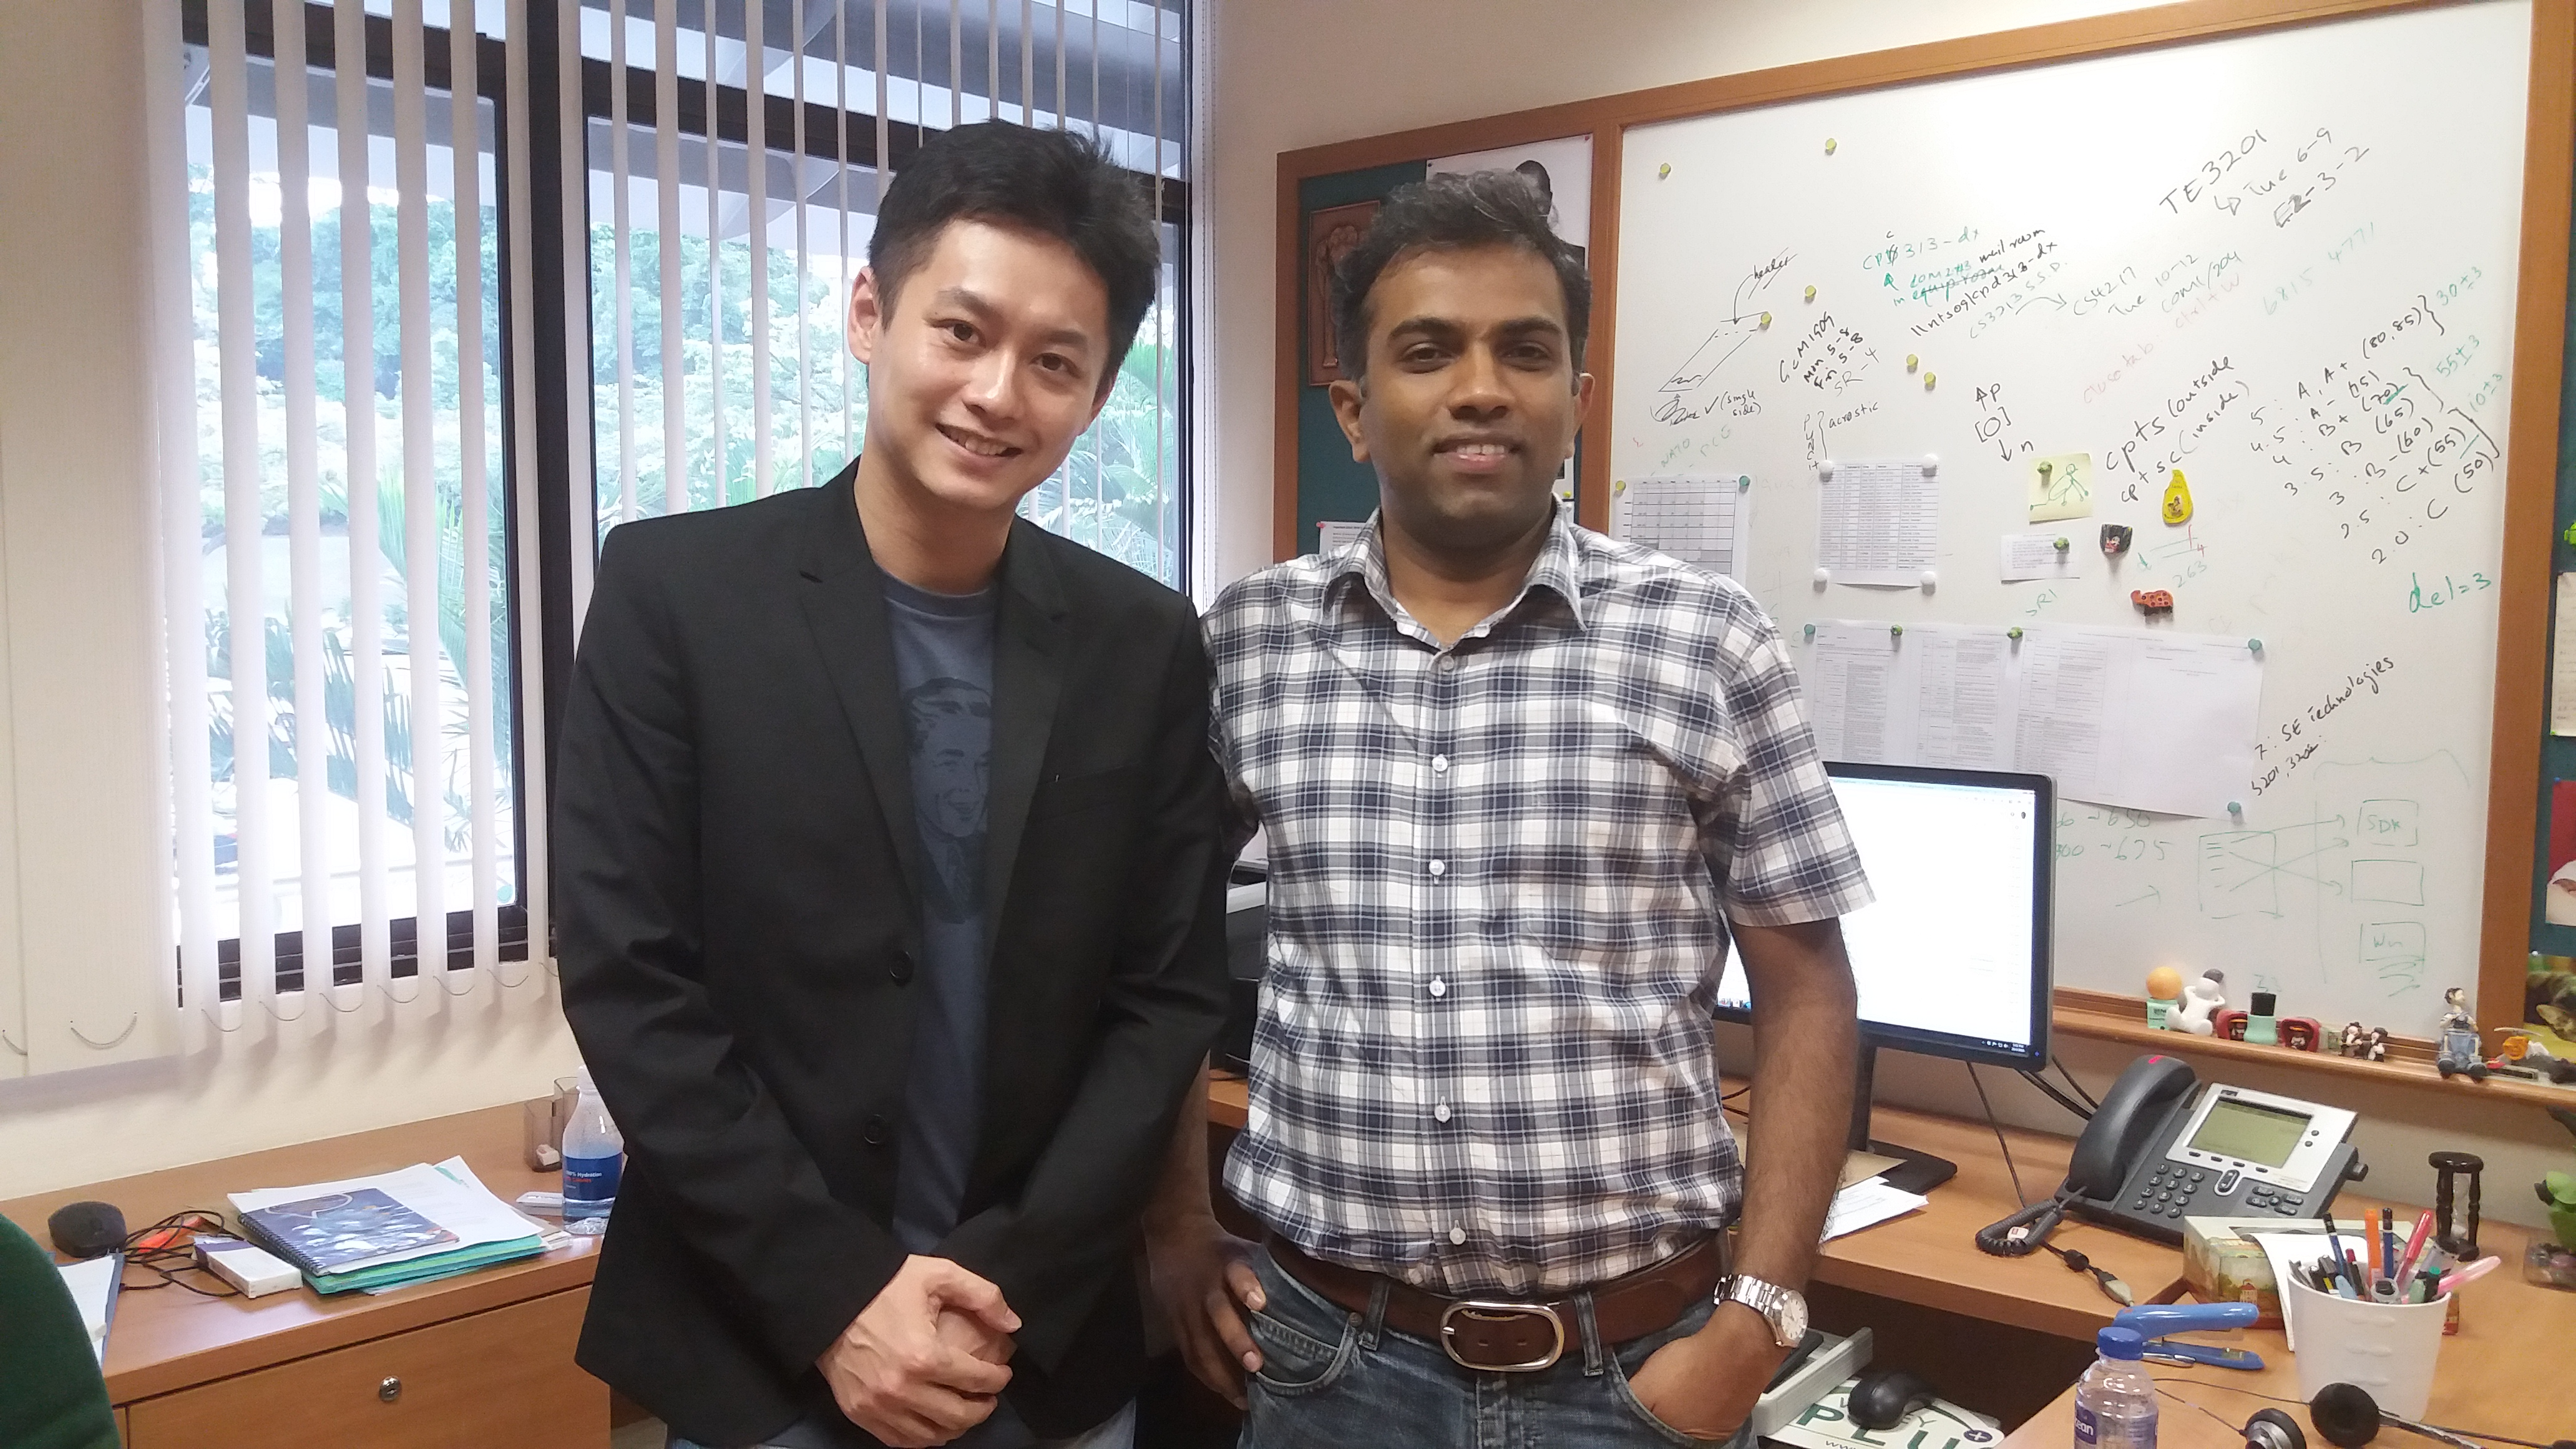 9.-Meeting-with-Damith-FBOA-and-inter-University-collaborative-learning